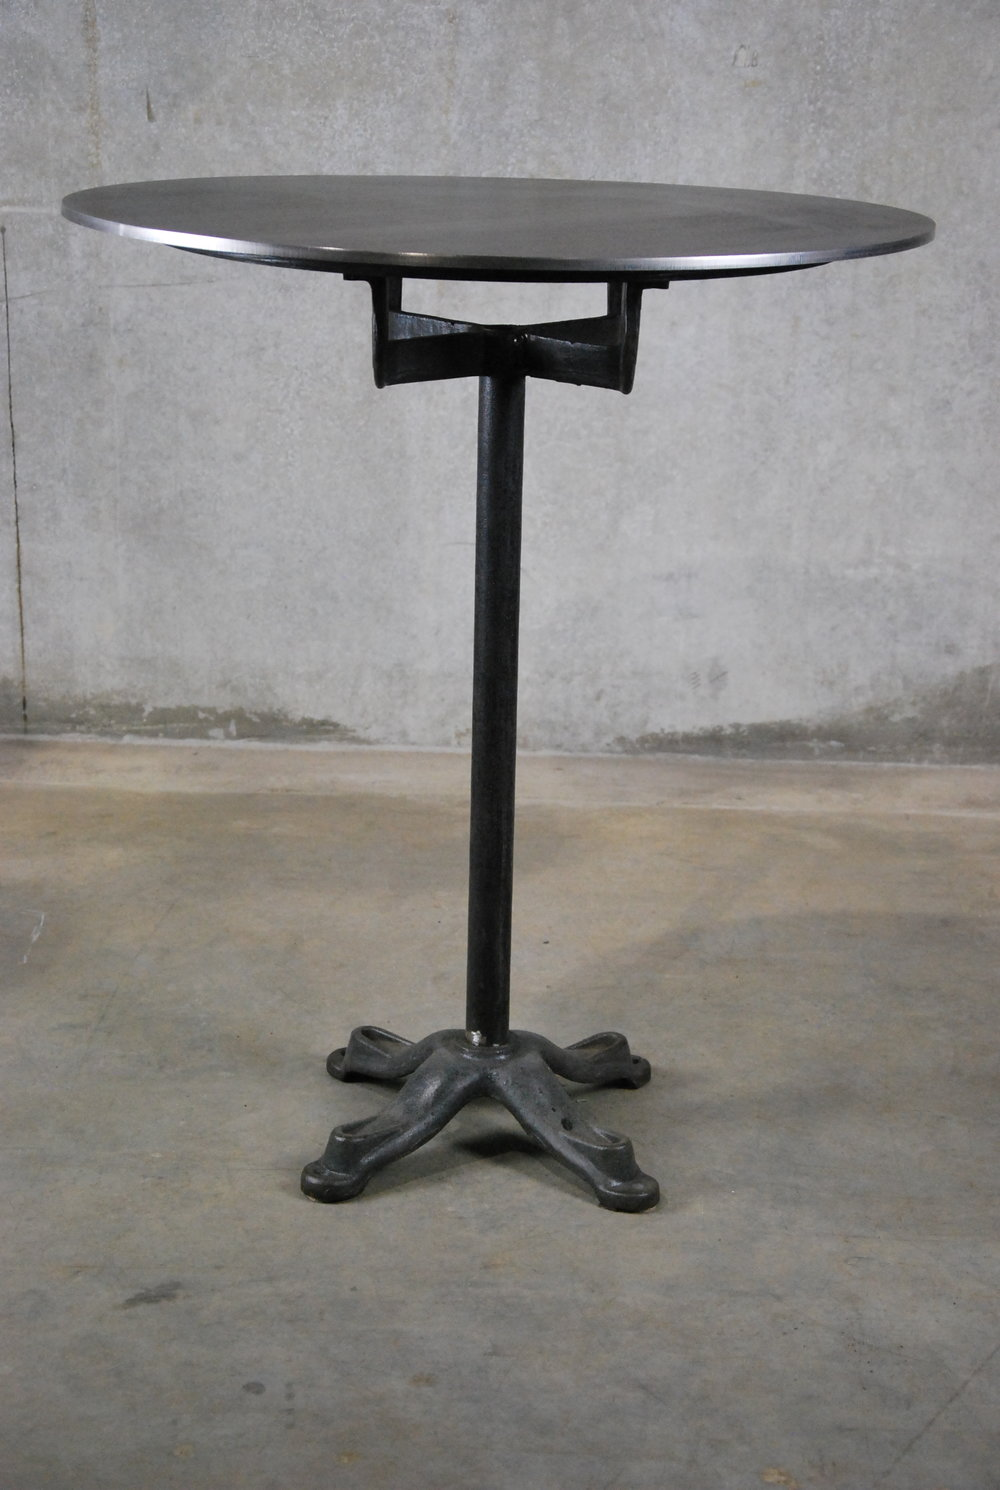 1930 American Industrial Pedestal Table